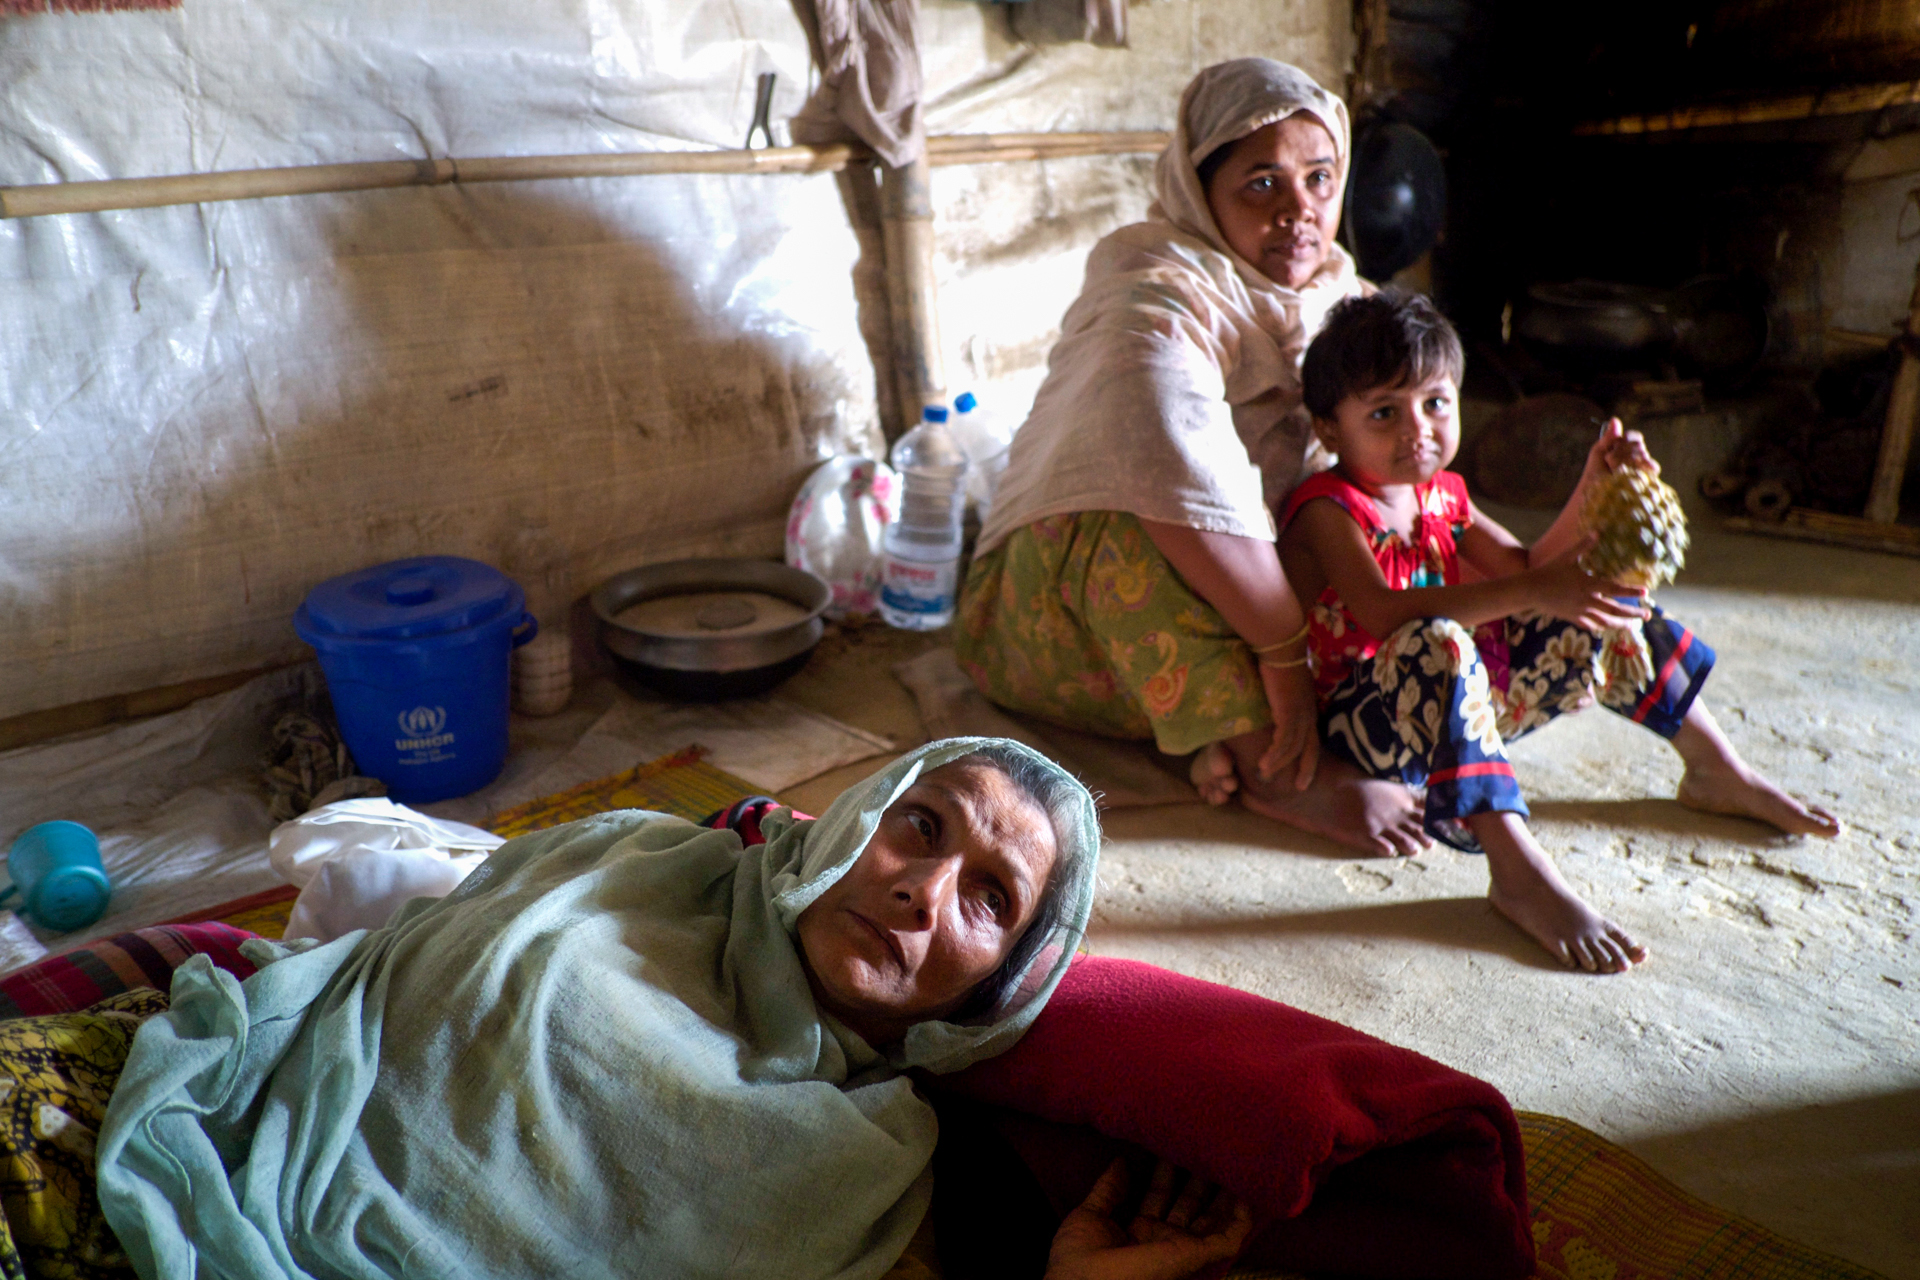 A woman in the foreground lays on her side while a younger woman and a child sit behind her on a dirt floor